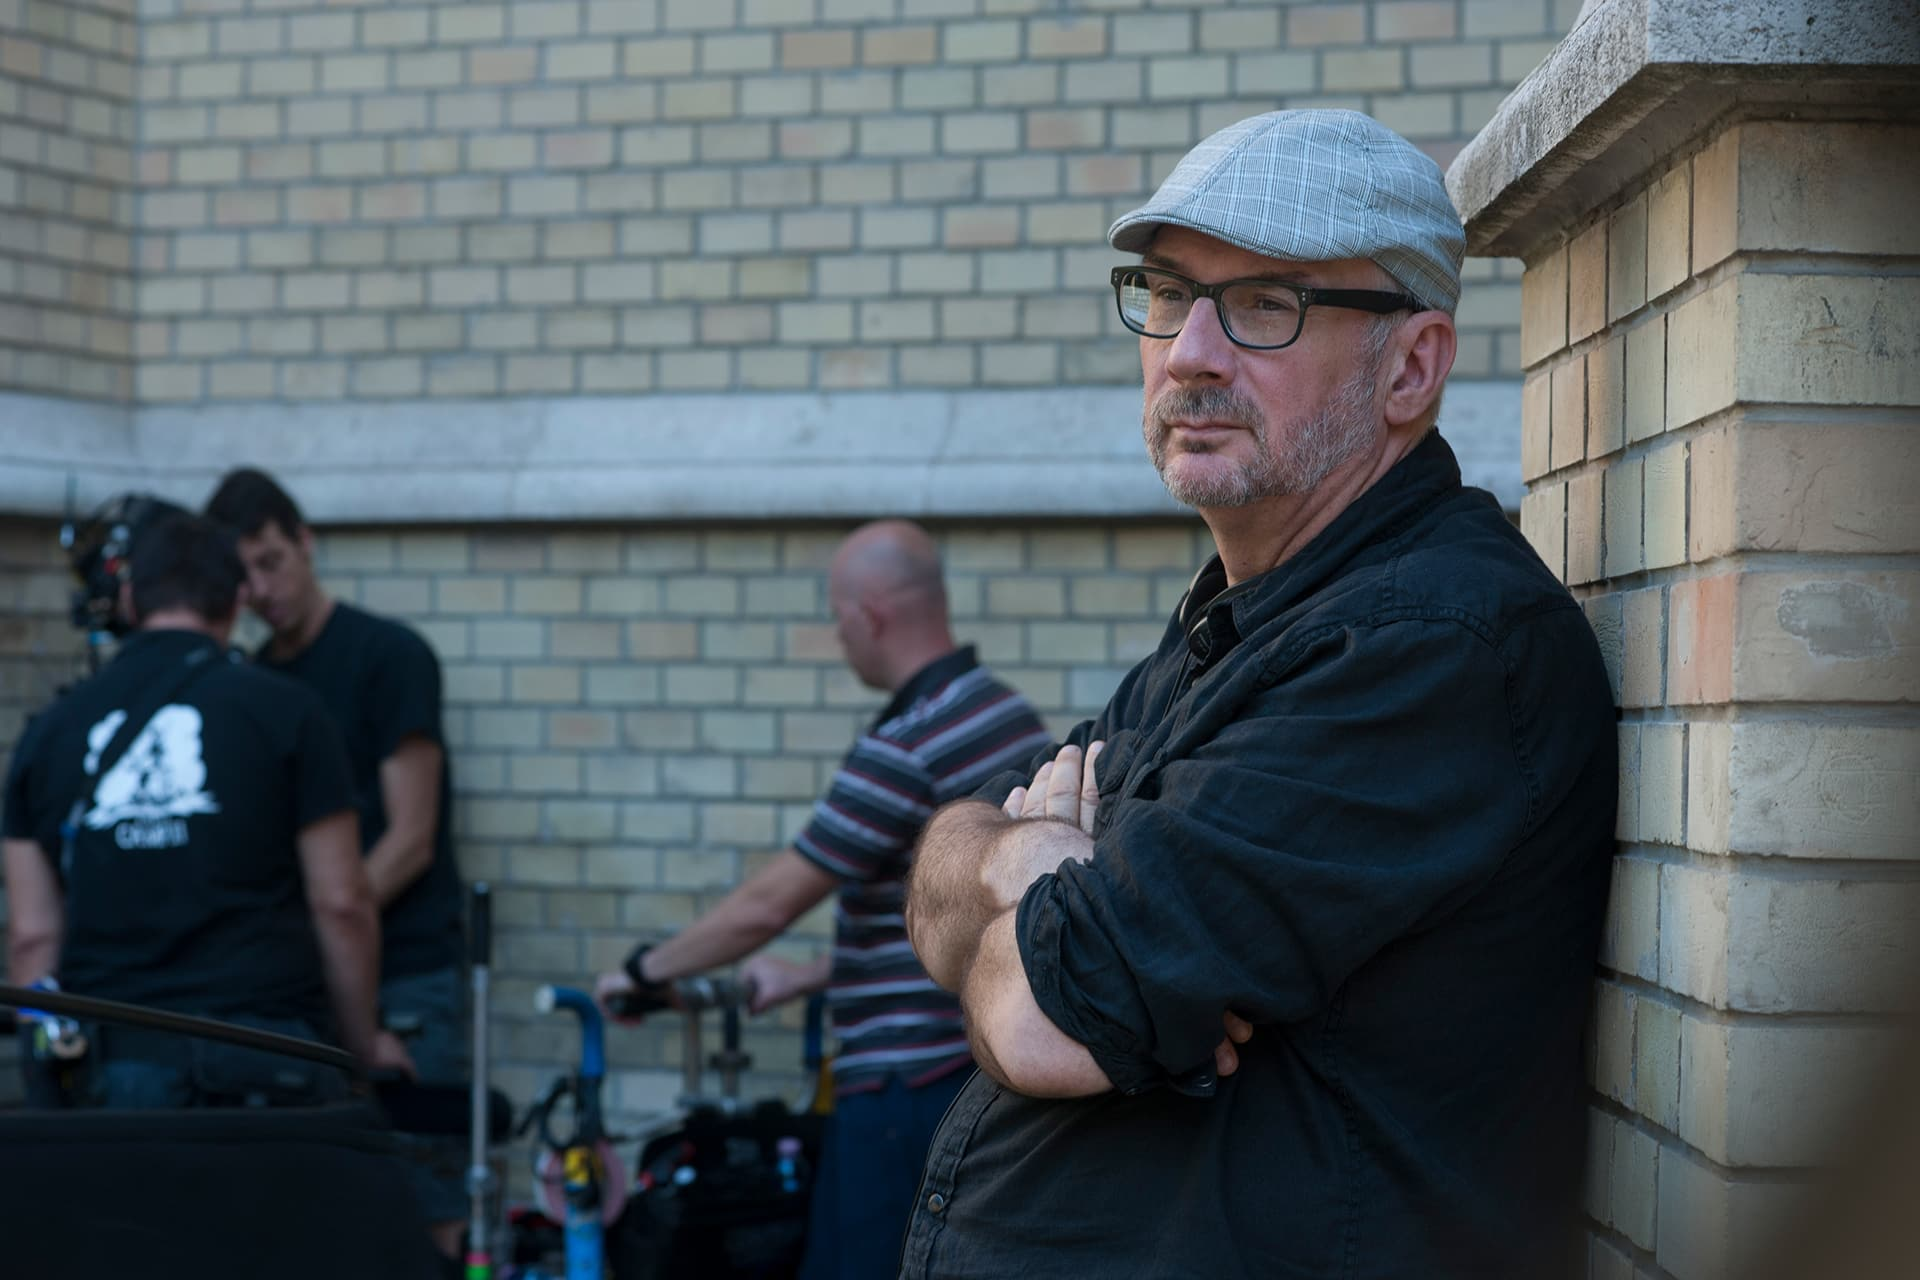 Director of Photography Michael Marshall on the set of X Company Season 3, filming in Budapest, Hungary.